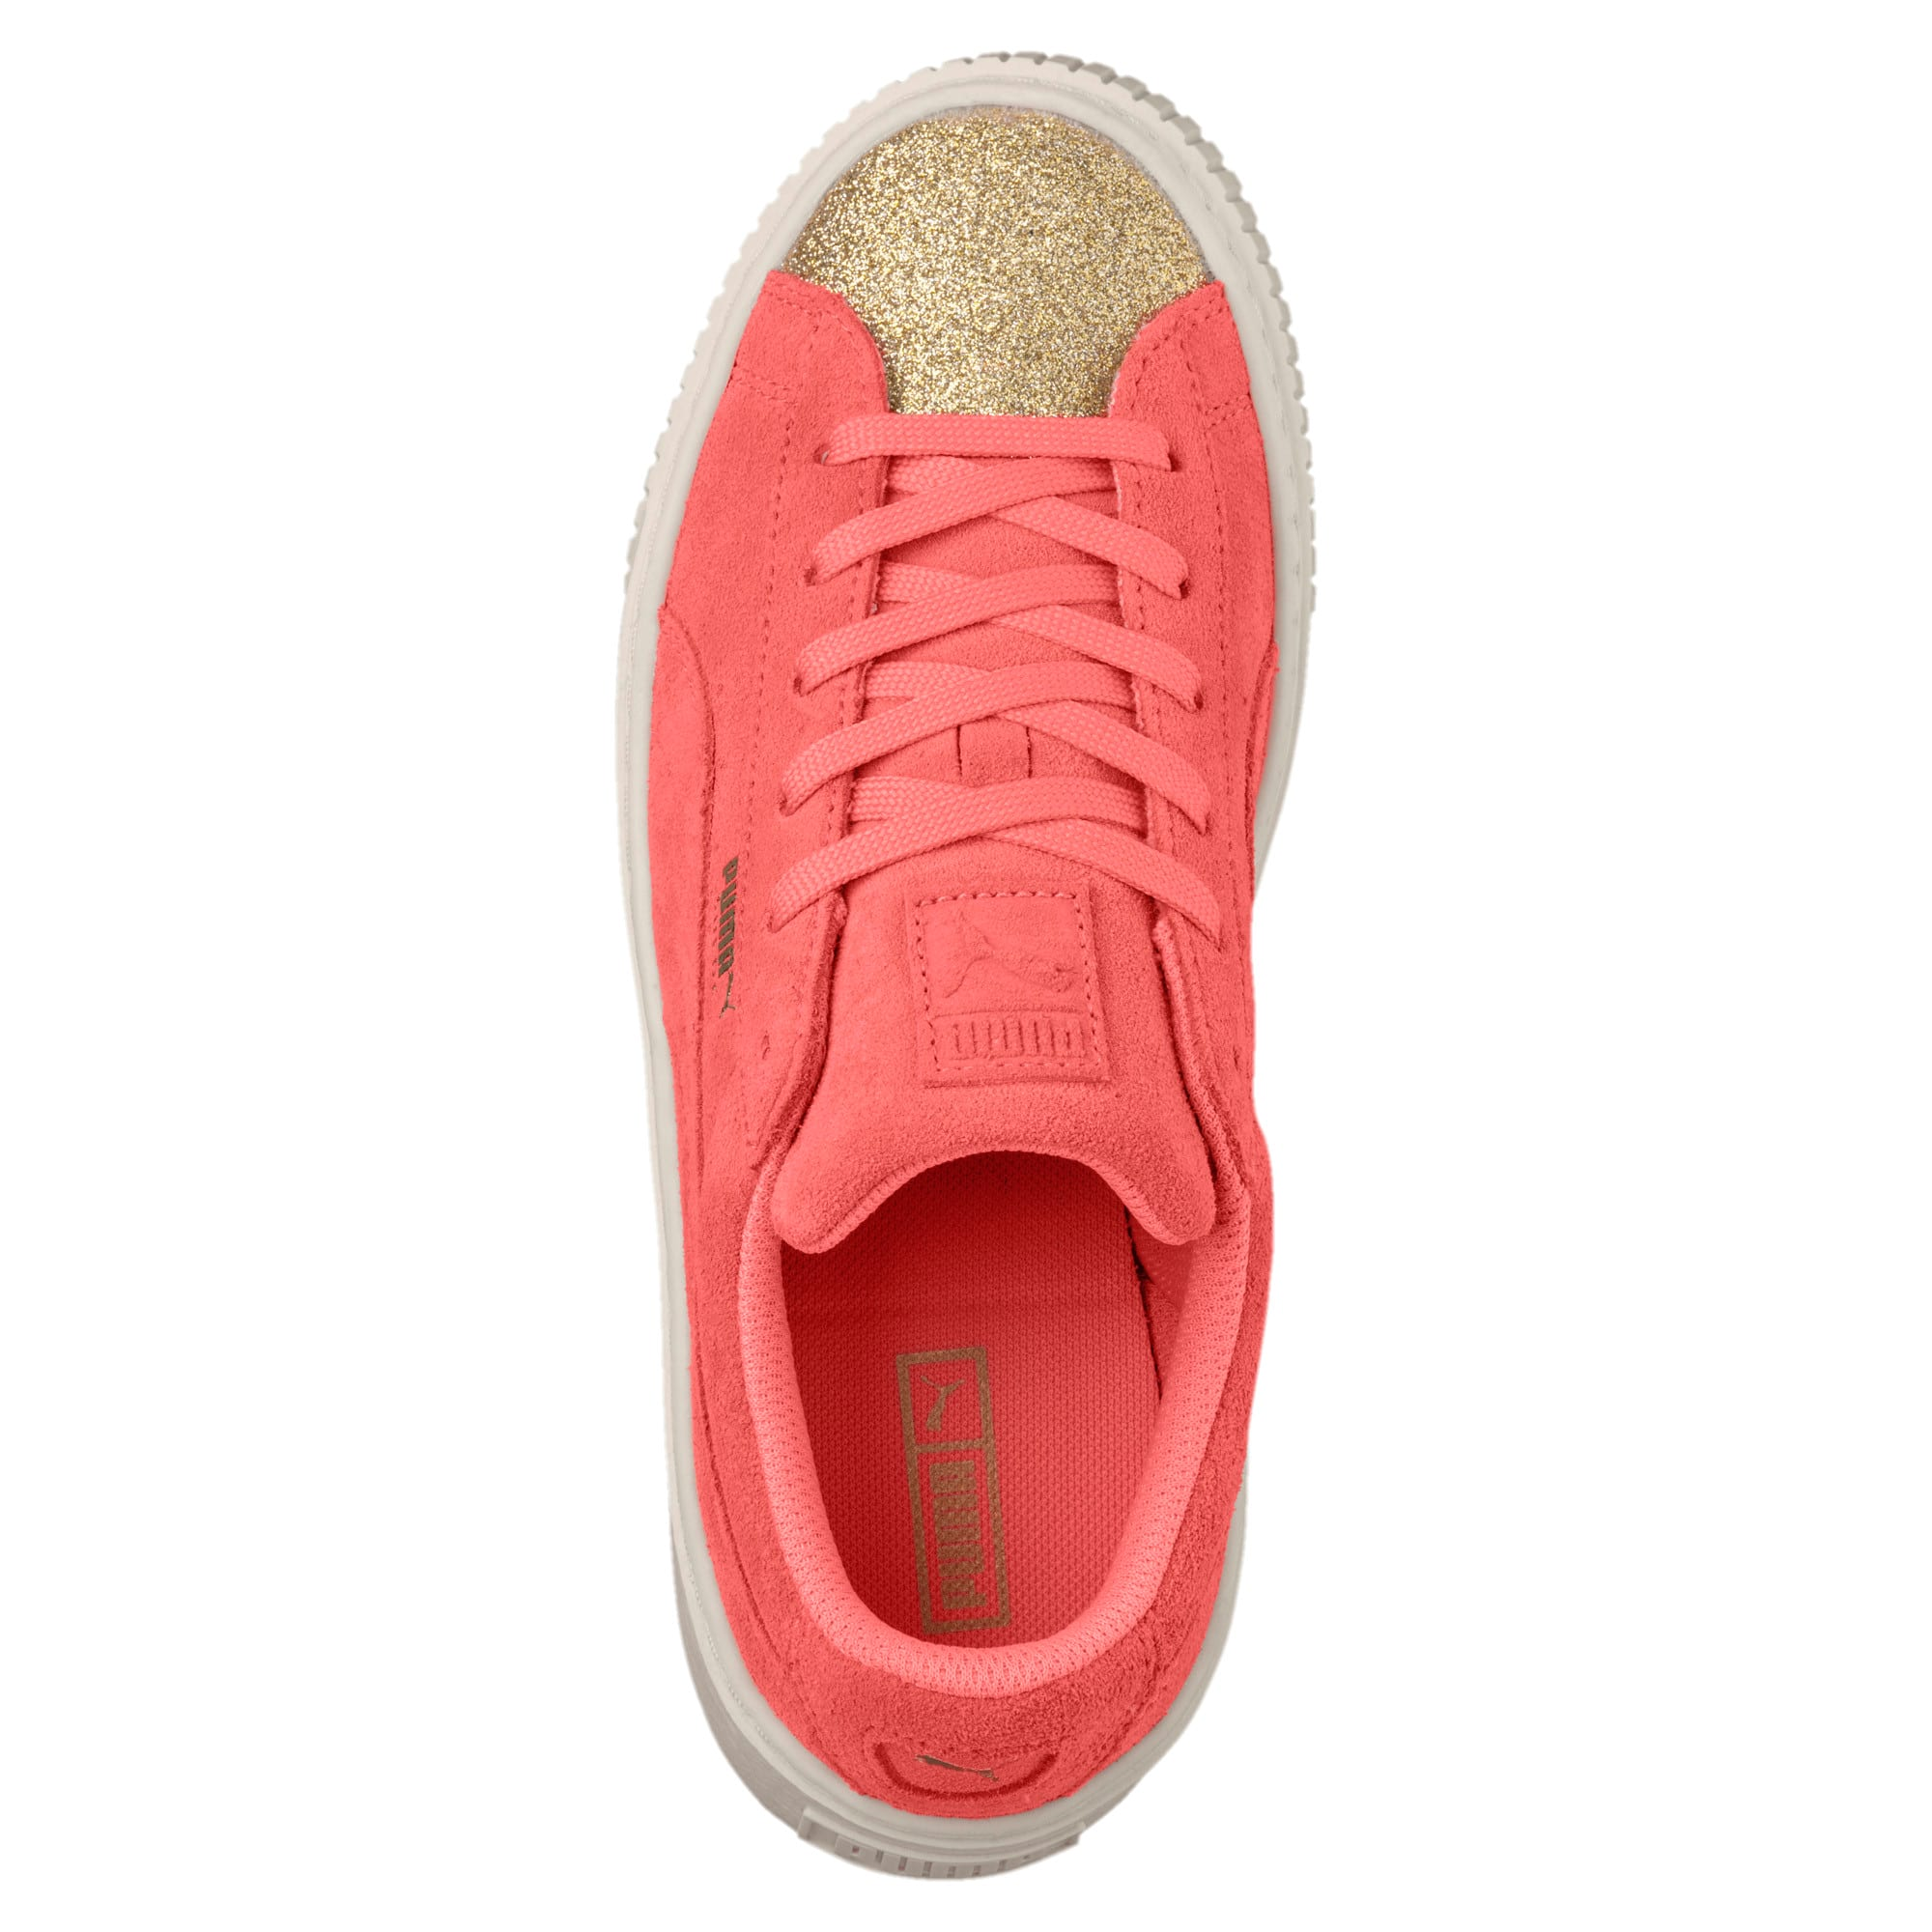 Thumbnail 5 of Suede Glam Girl's Sneakers JR, Puma Team Gold-Shell Pink, medium